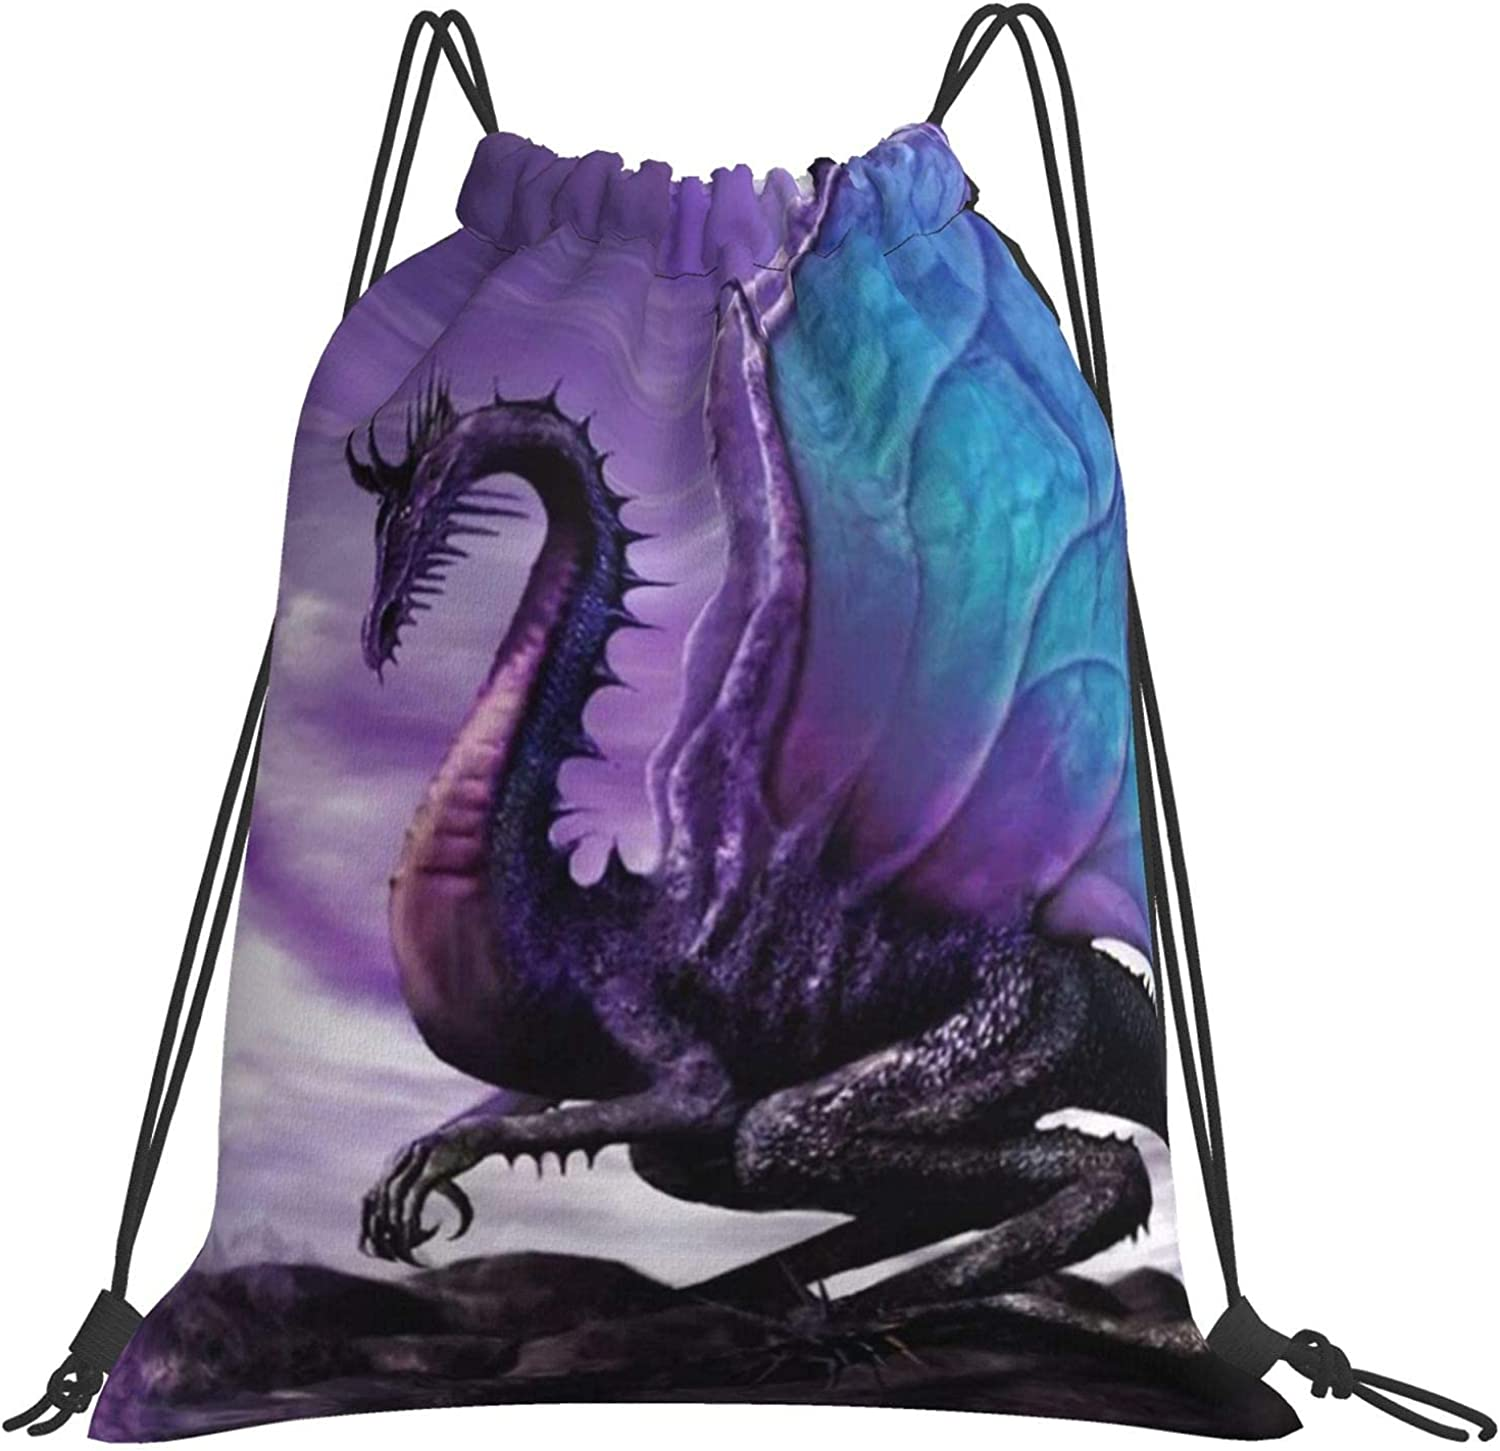 Purple Dragon Moon Drstring Backpack Sport Gym High quality new Bag Spring new work one after another Hiking